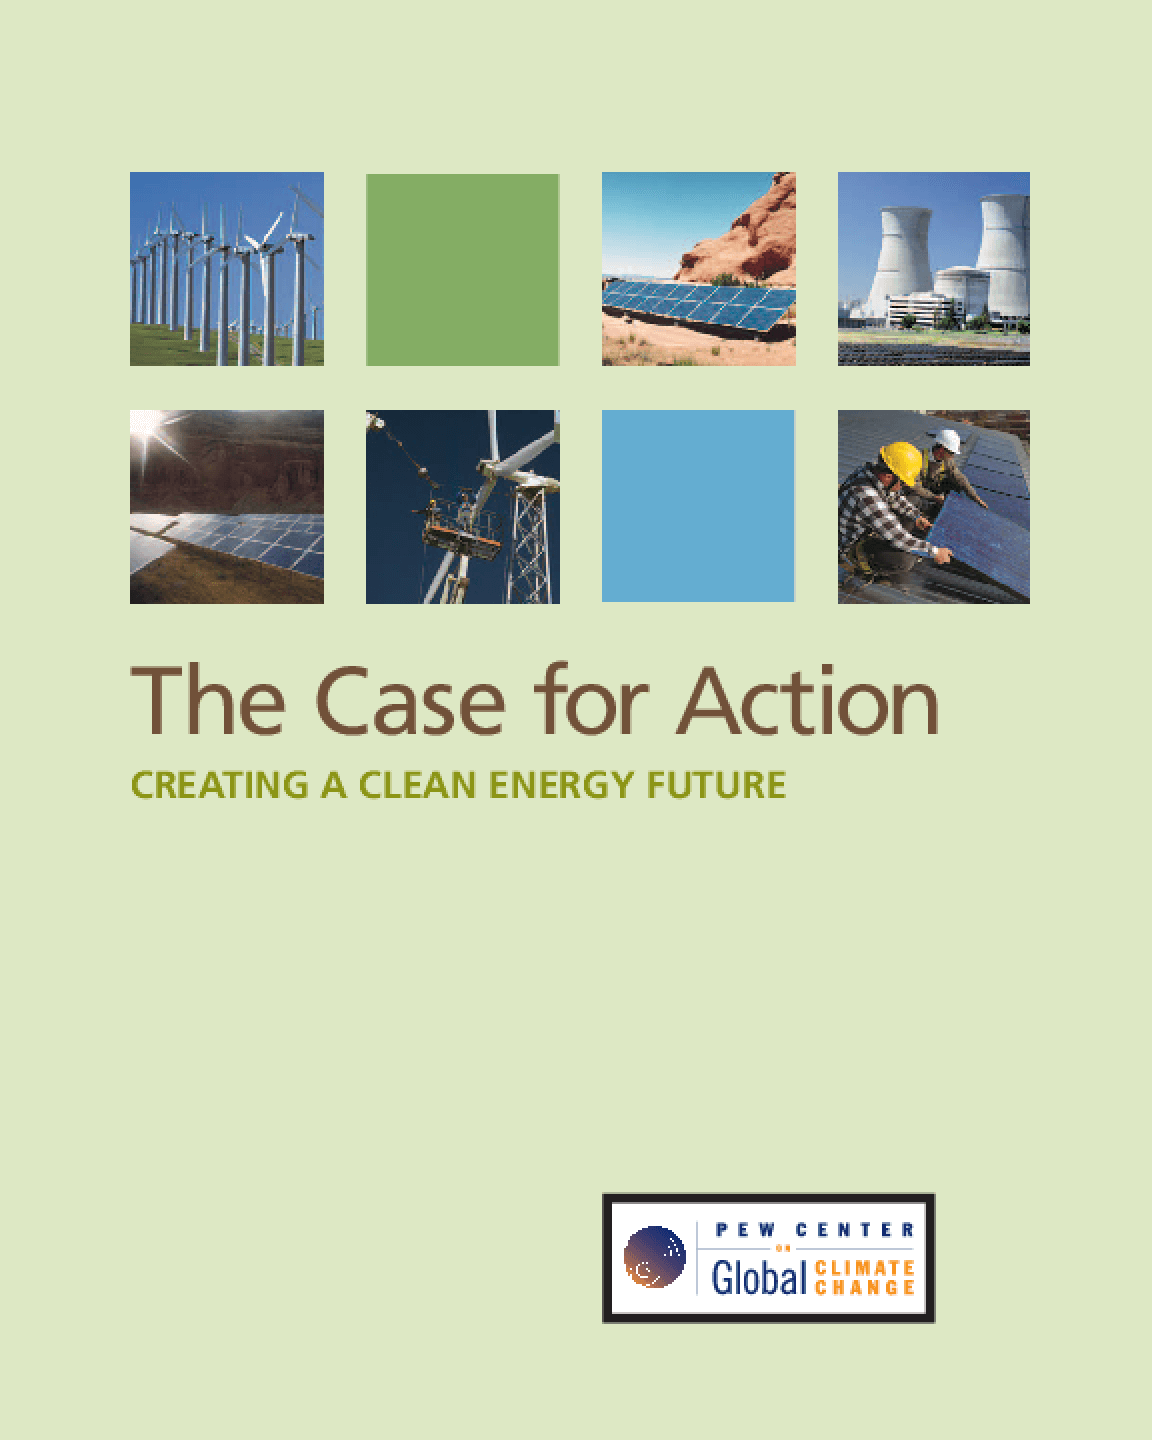 The Case for Action: Creating a Clean Energy Future